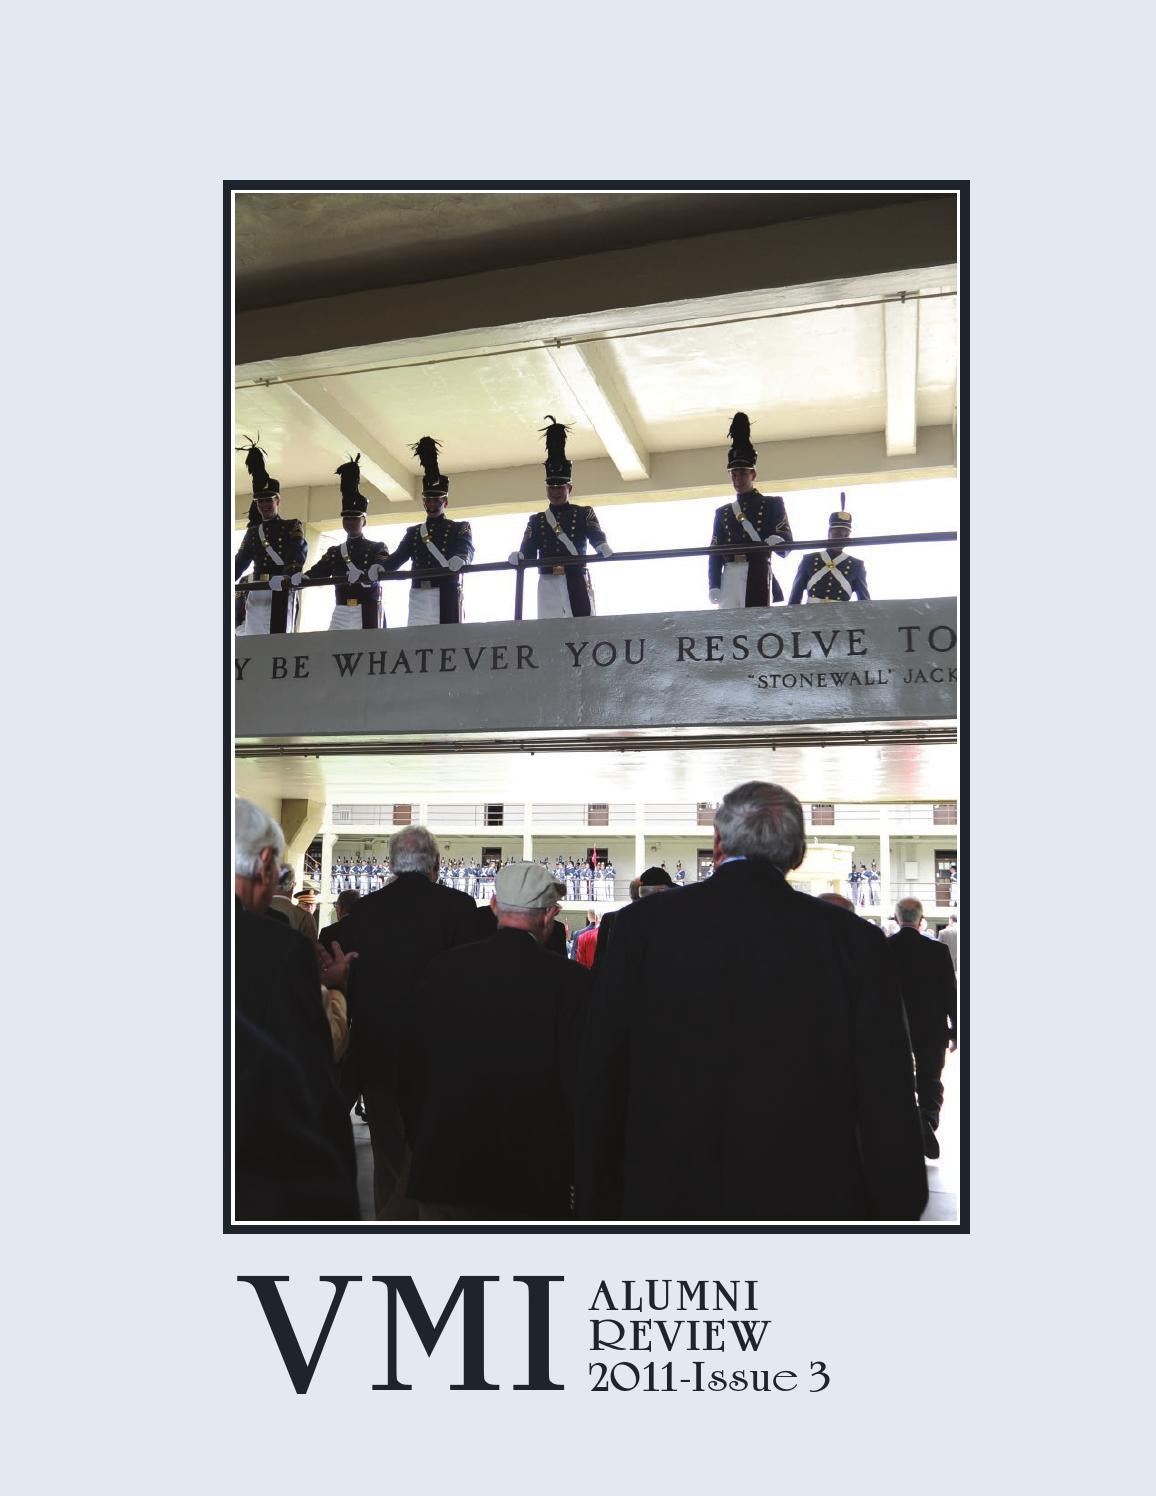 Alumni Review 2011 Issue 3 By Vmi Agencies Issuu Yisell39s Blabbing Blurbs Face Chart